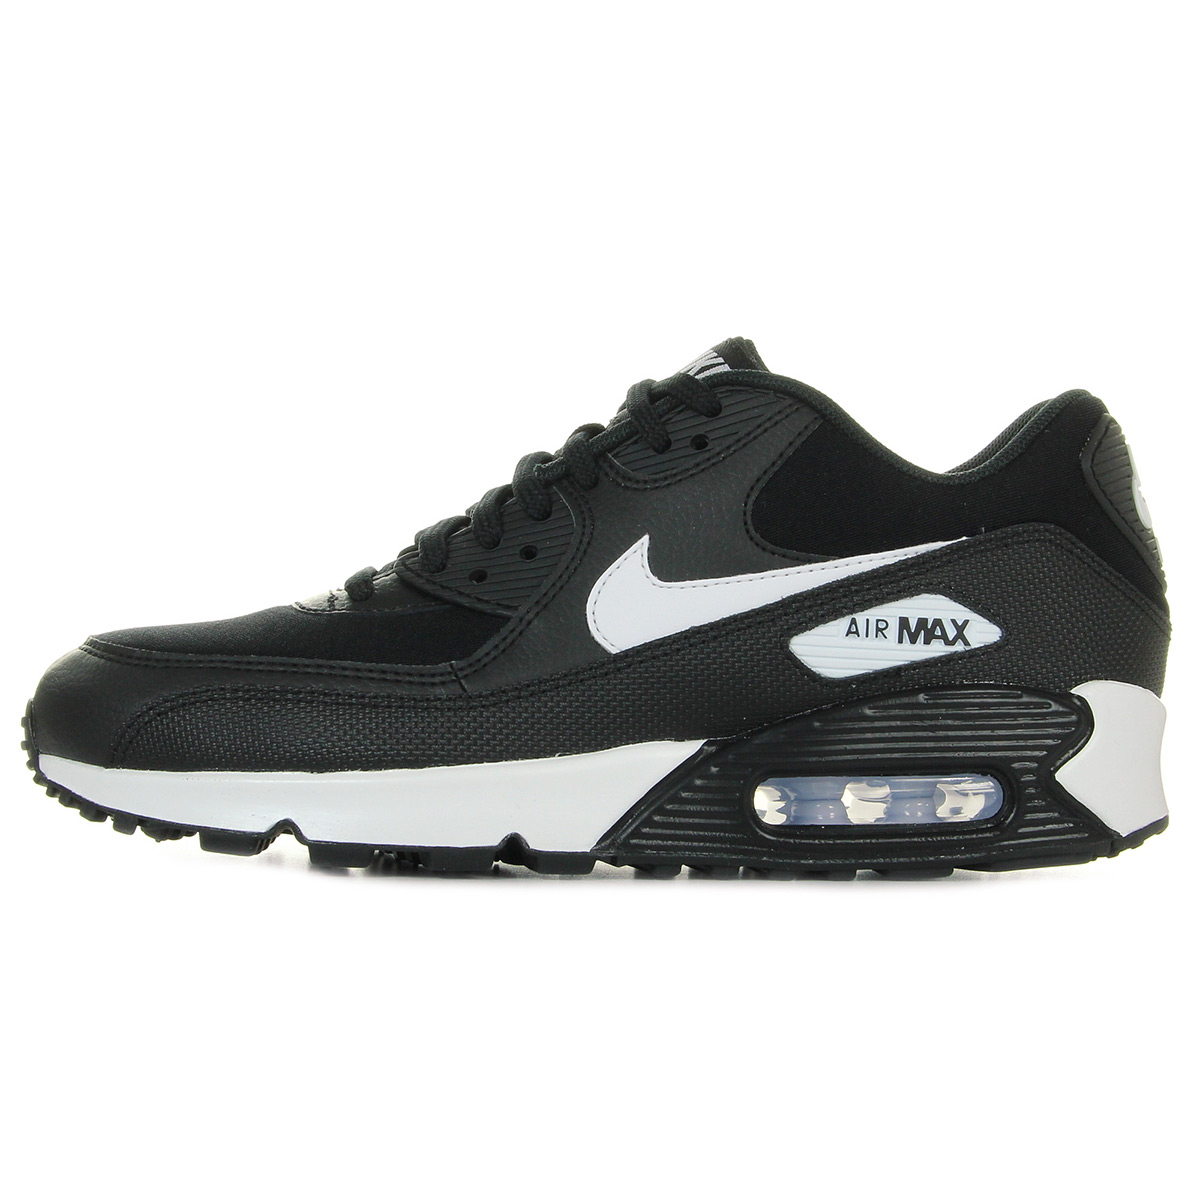 "Nike WMNS Air Max 90 ""Black & White"" 325213047, Baskets mode femme"